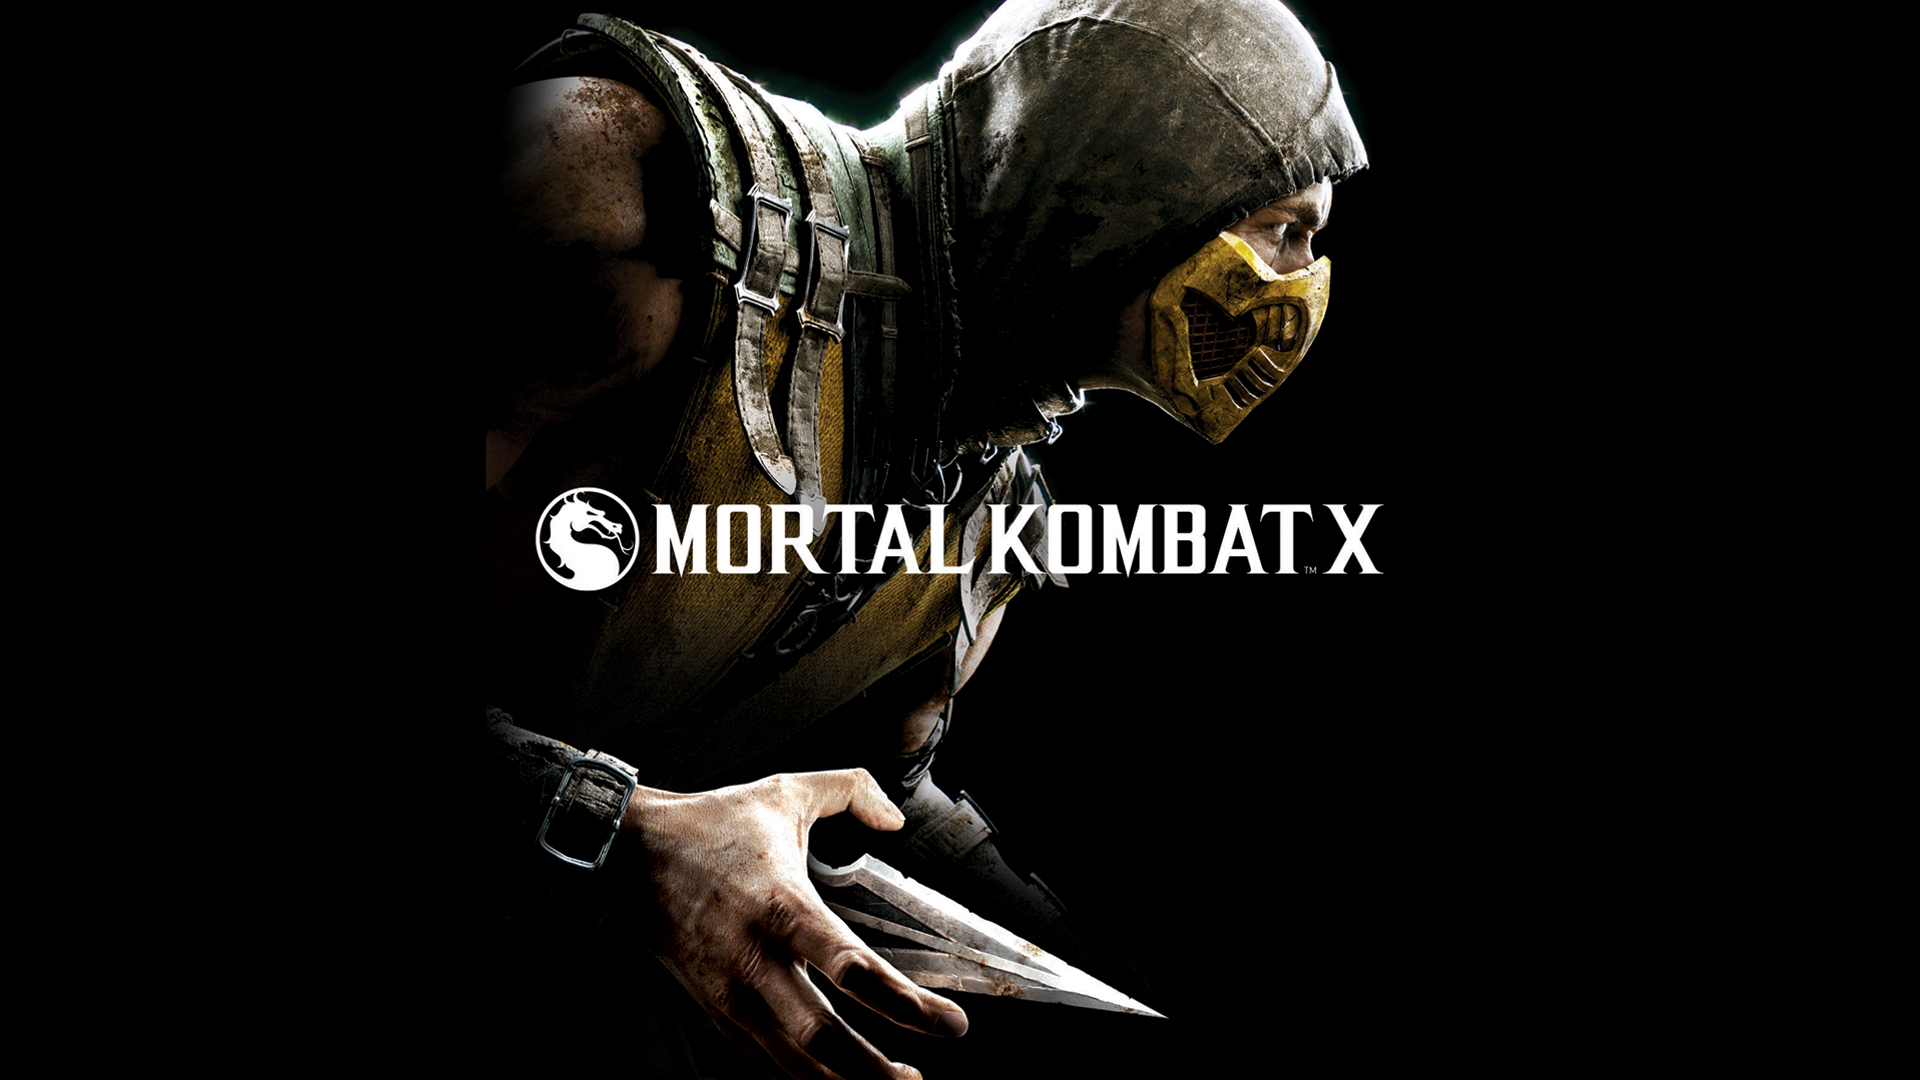 scorpion mortal kombat x combat game fighting hd 1920x1080 1080p 1920x1080